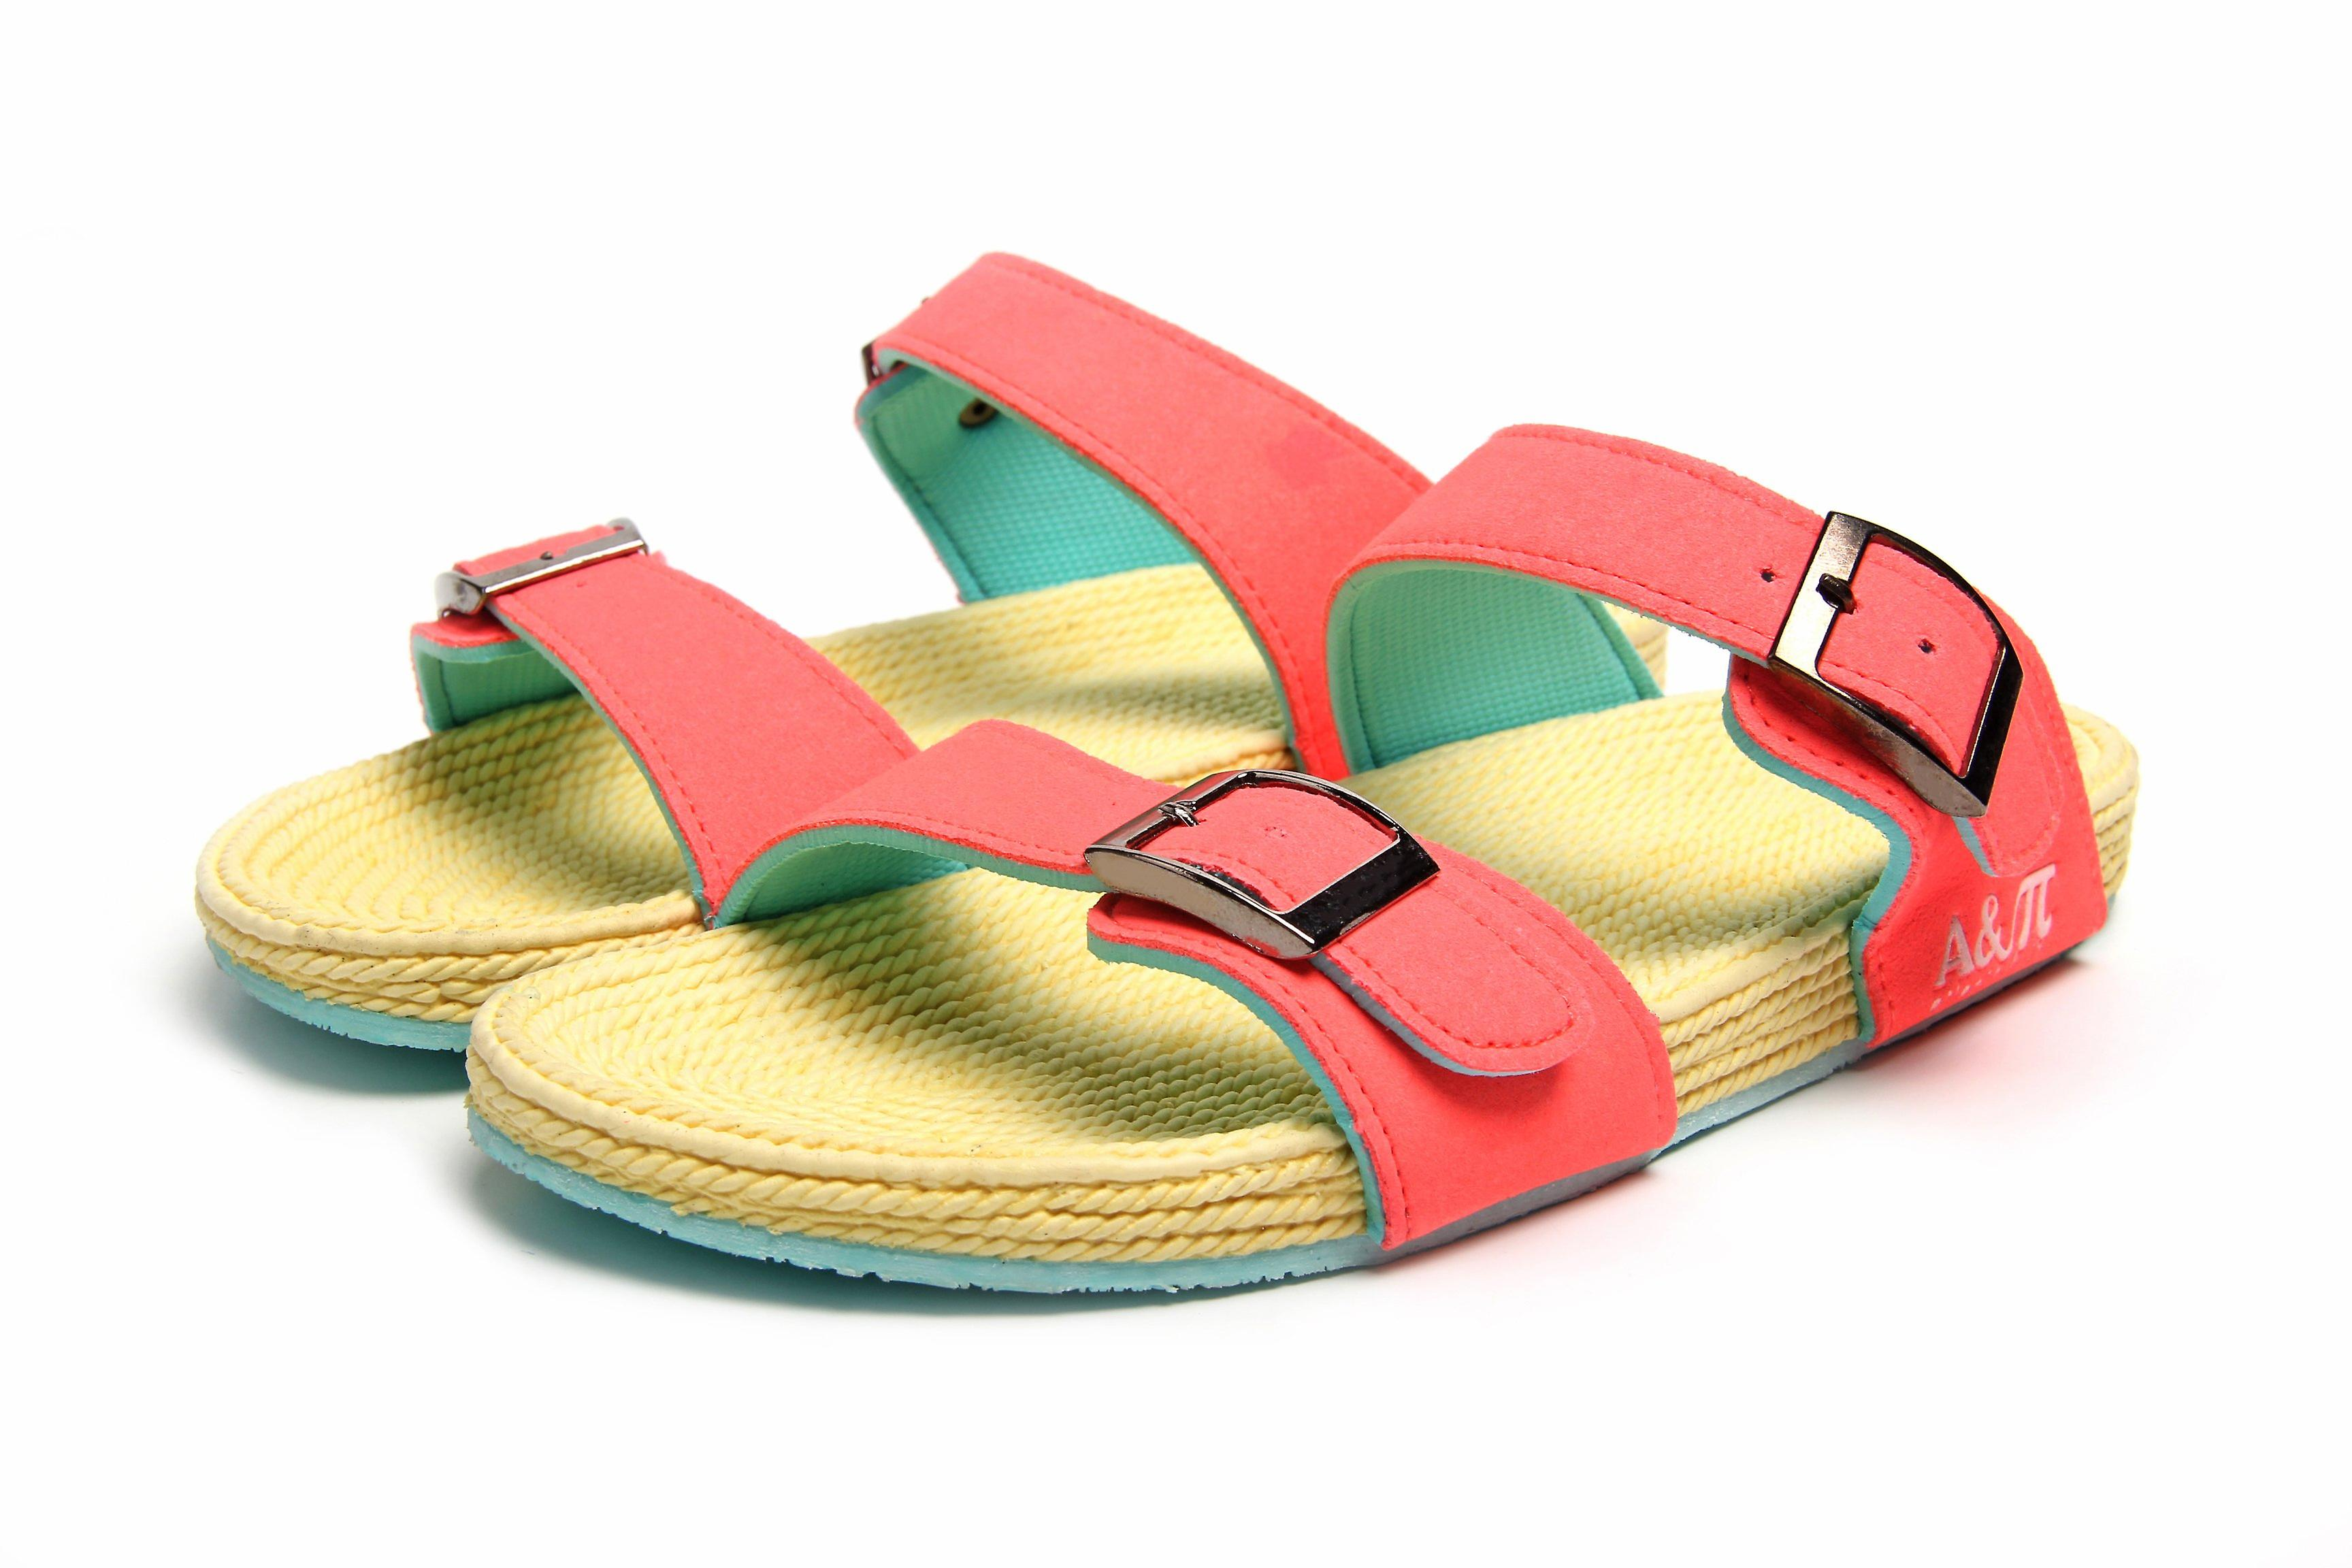 Atlantis Shoes Women Supportive Cushioned Comfortable Sandals Dual Band Pink-beige